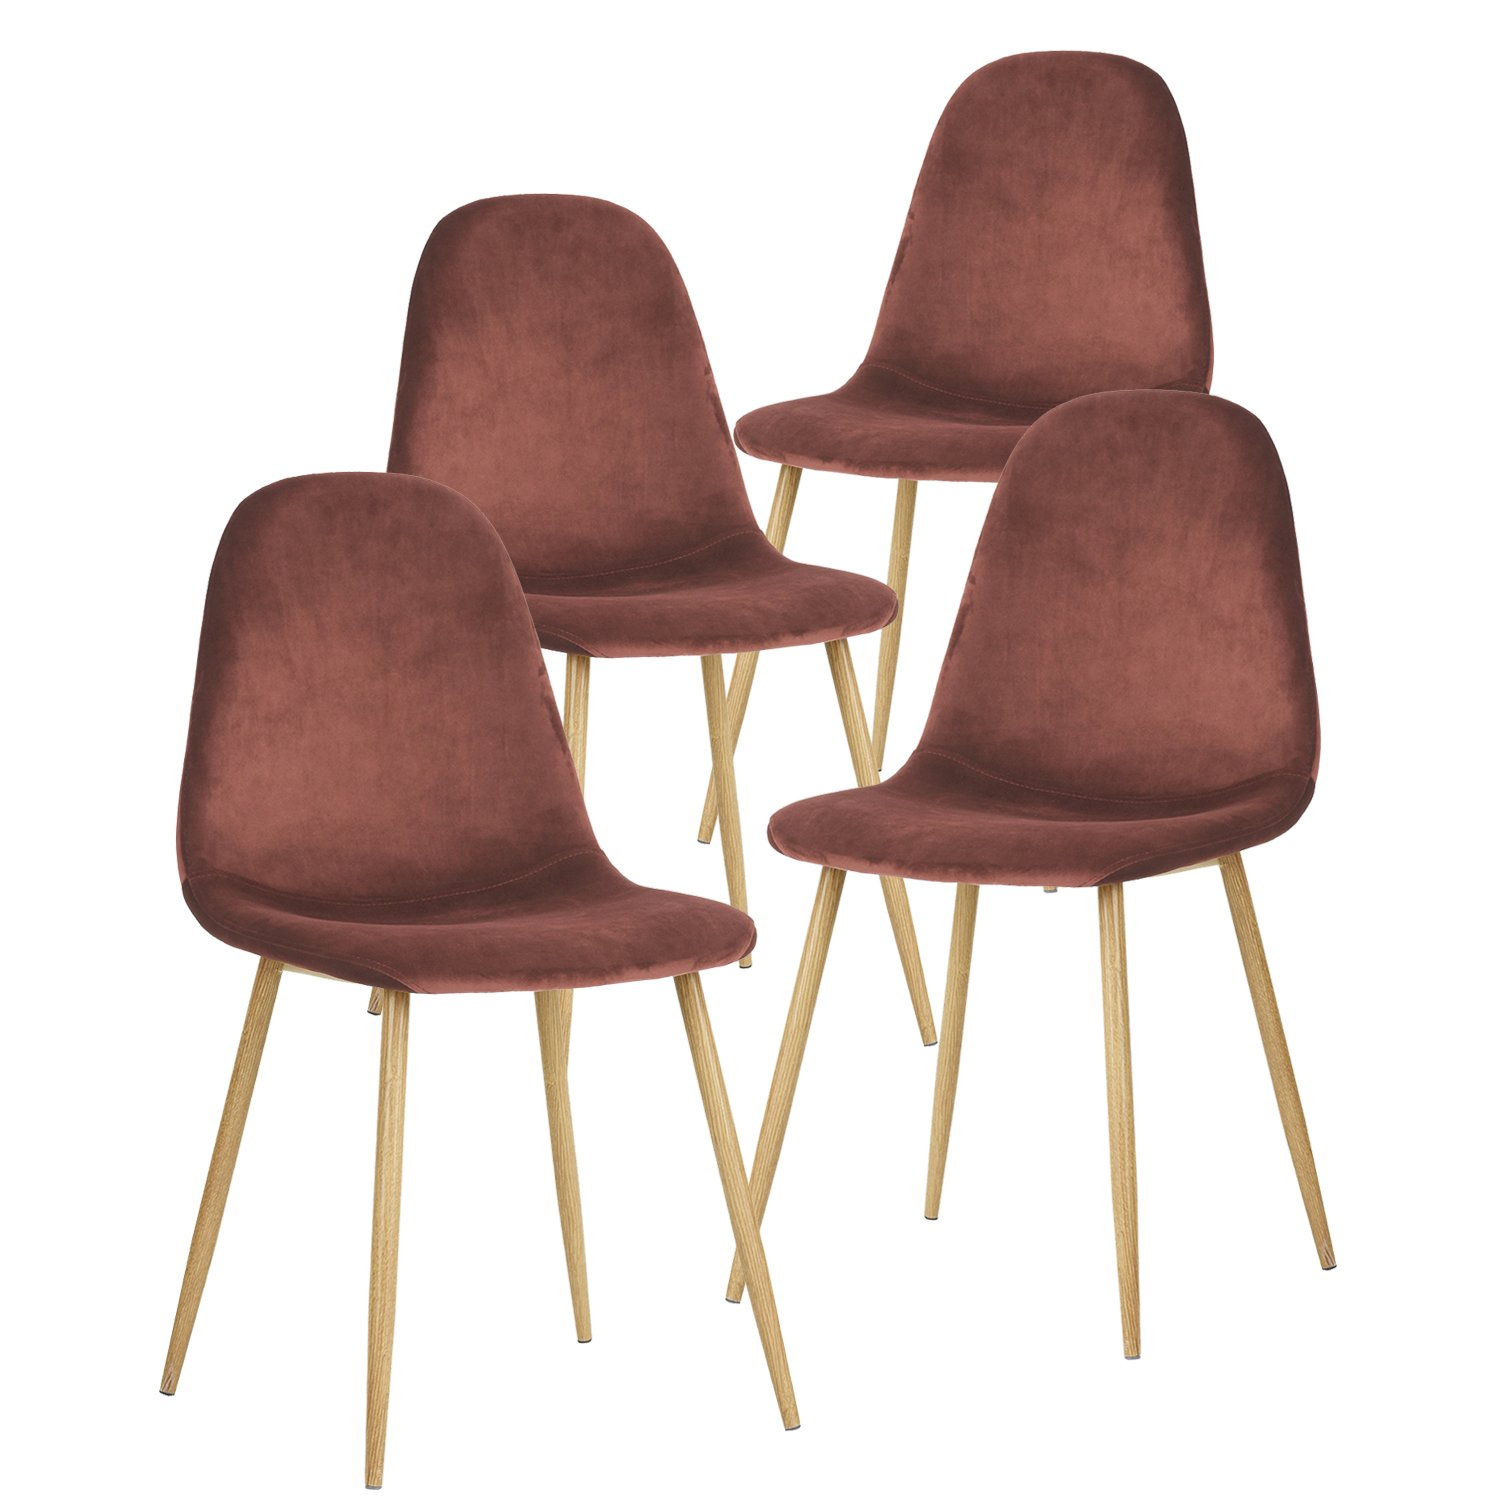 GreenForest Dining Chairs,Elegant Velvet Back and Cushion, Mid Century Modern Side Chairs Set of 4,Rose